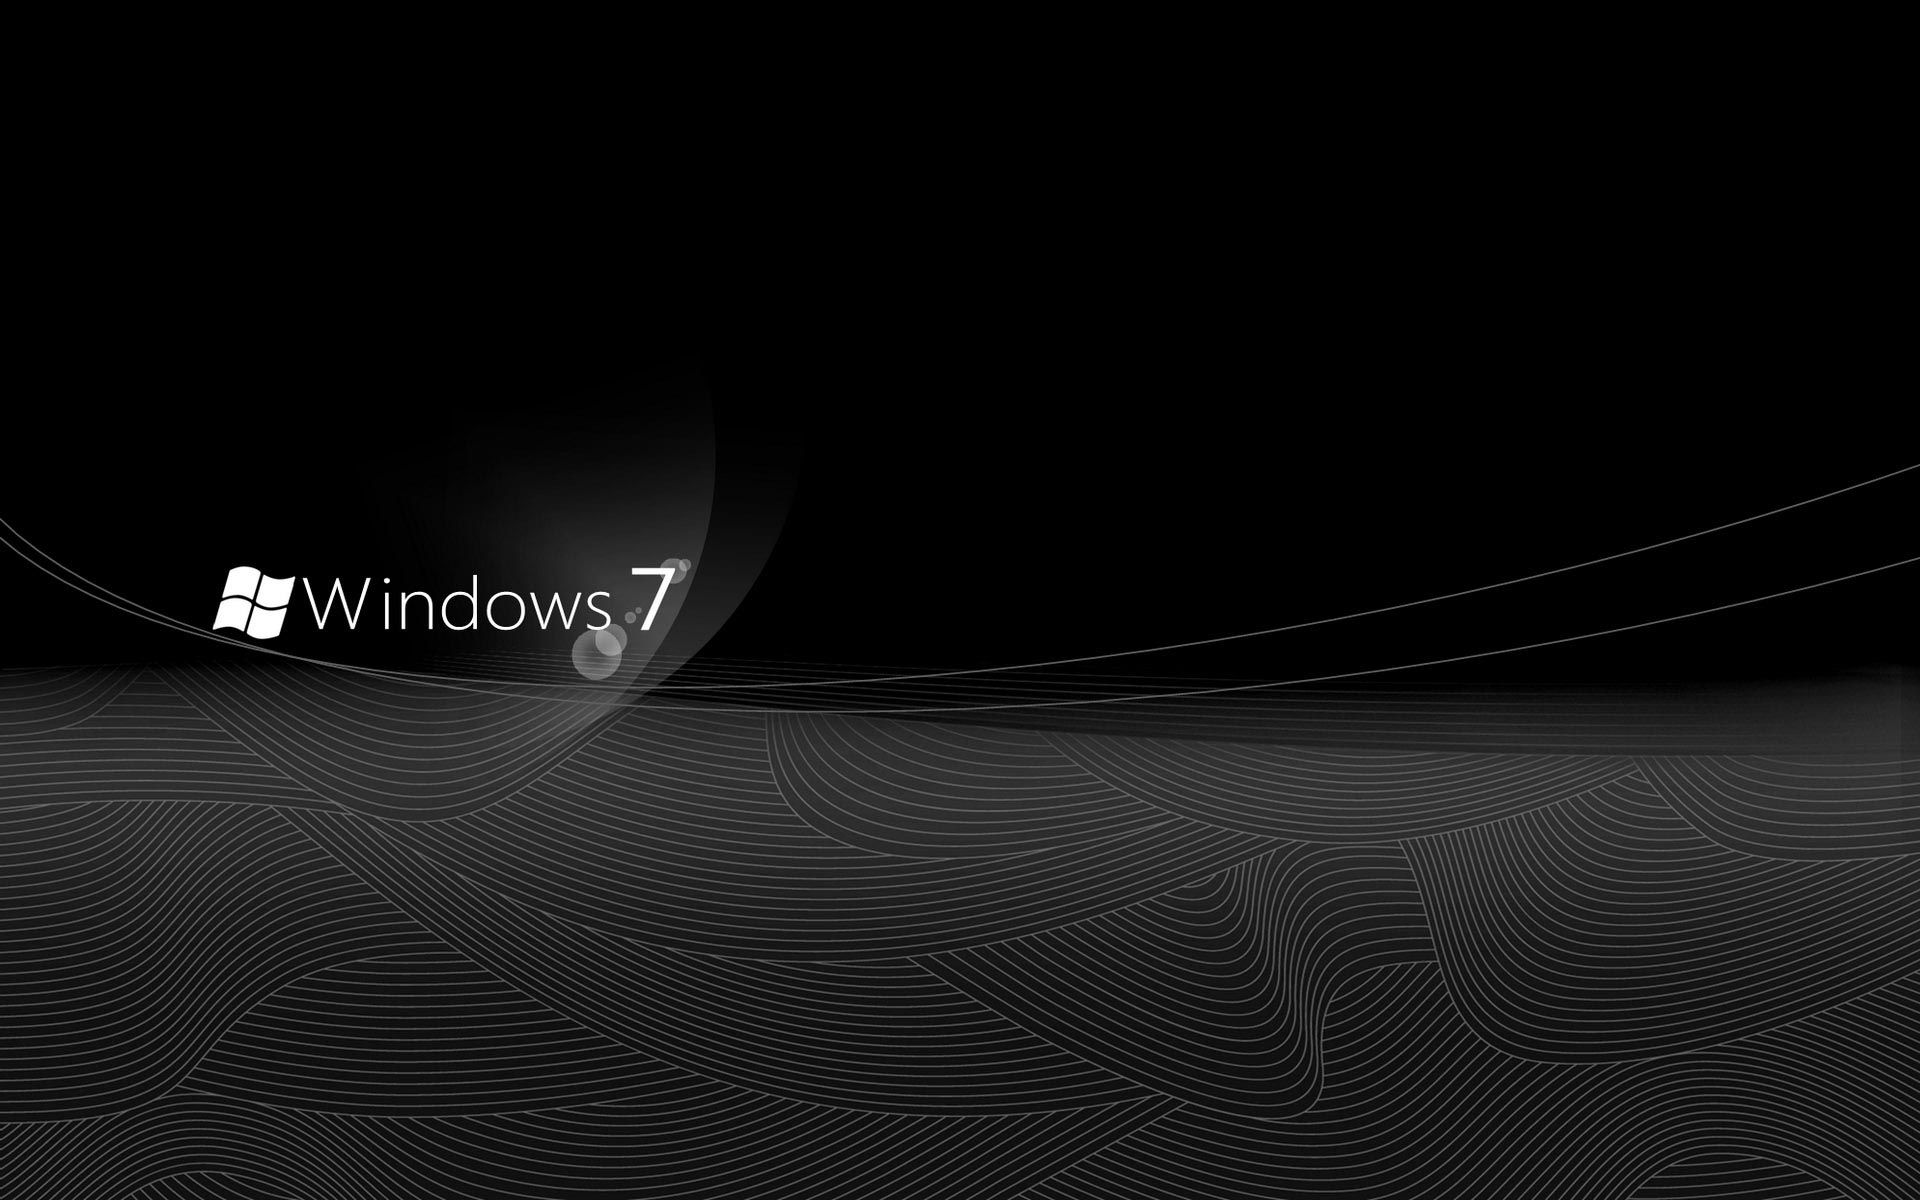 Windows 7 Elegant Black Desktop Wallpaper Desktop Wallpapers Backgrounds Windows Wallpaper Dark Wallpaper